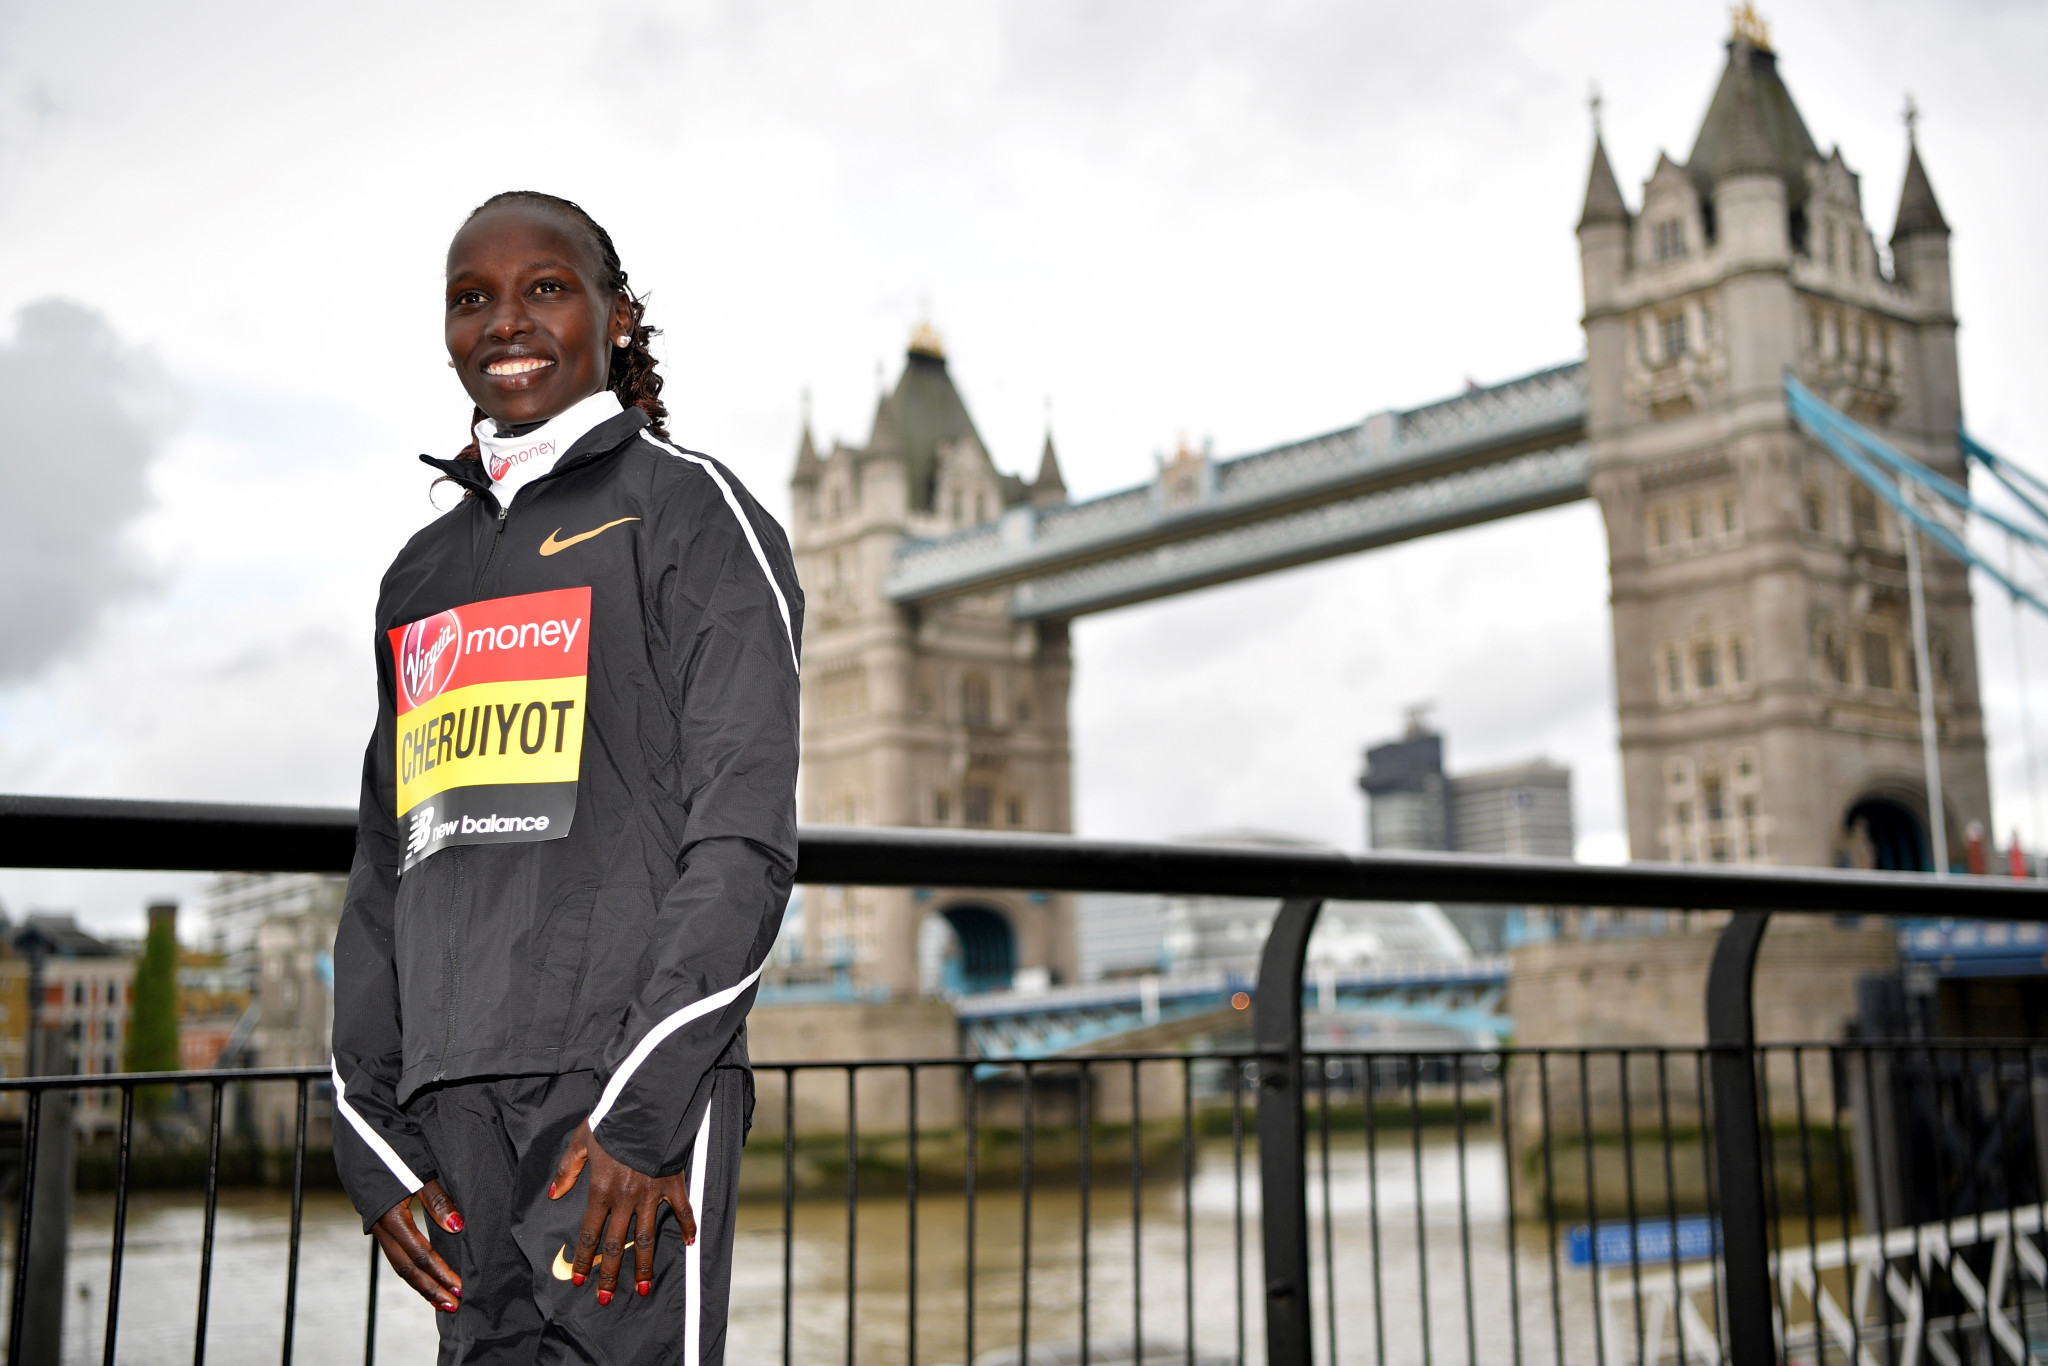 Cheruiyot targets personal best as Kenyan prepares for London Marathon title defence